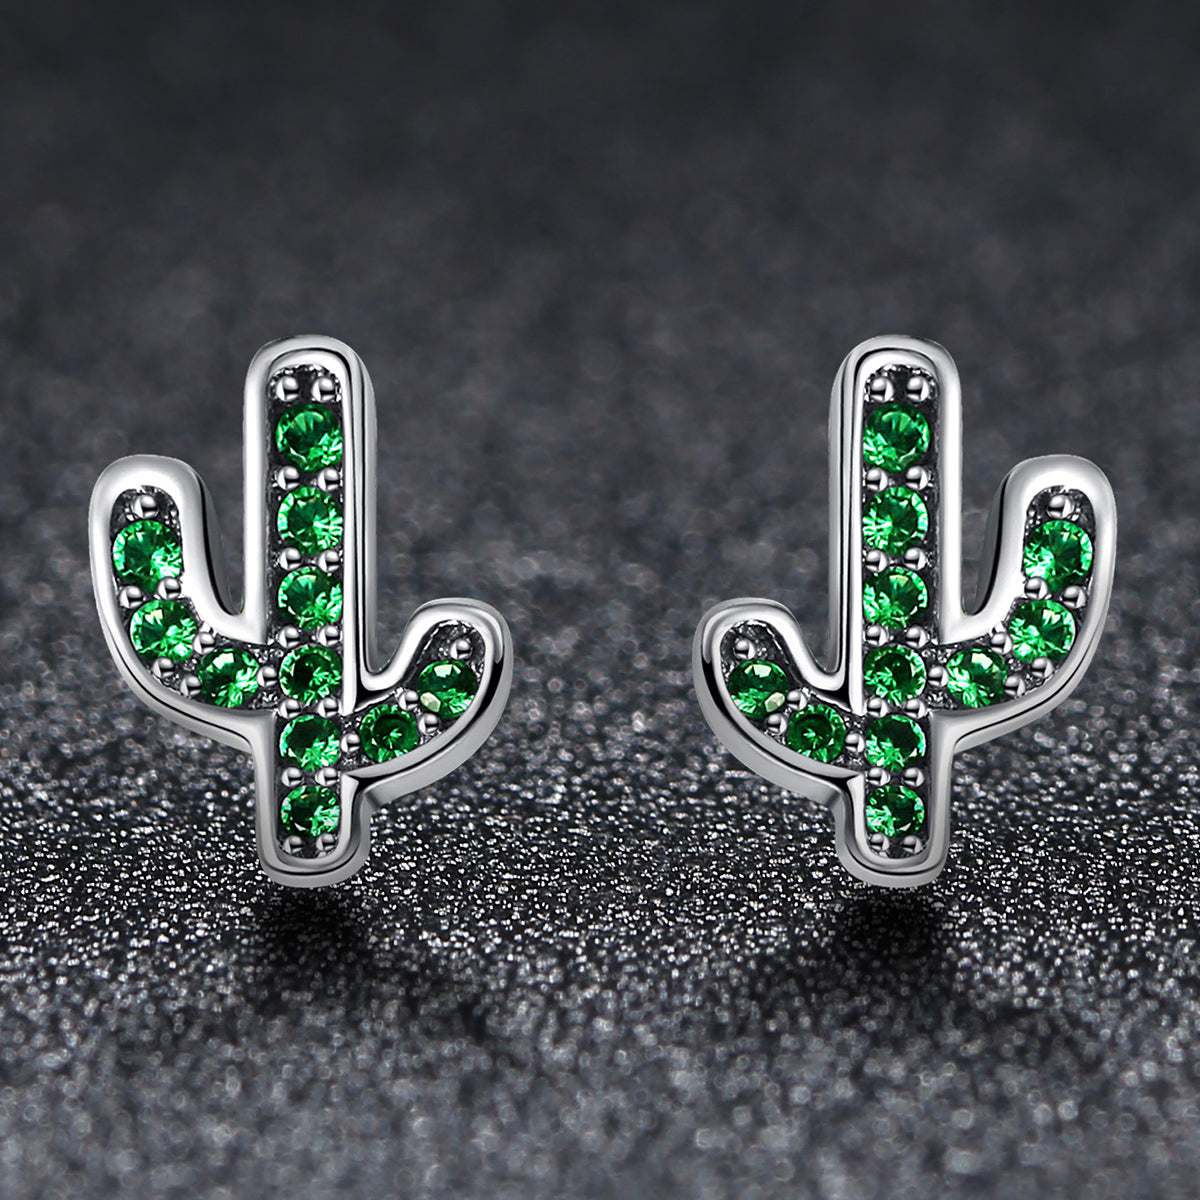 bdace4a26 ... 925 Sterling Silver Dazzling Green Cactus Crystal Stud Earrings for  Women Authentic Silver Jewelry SCE097 ...